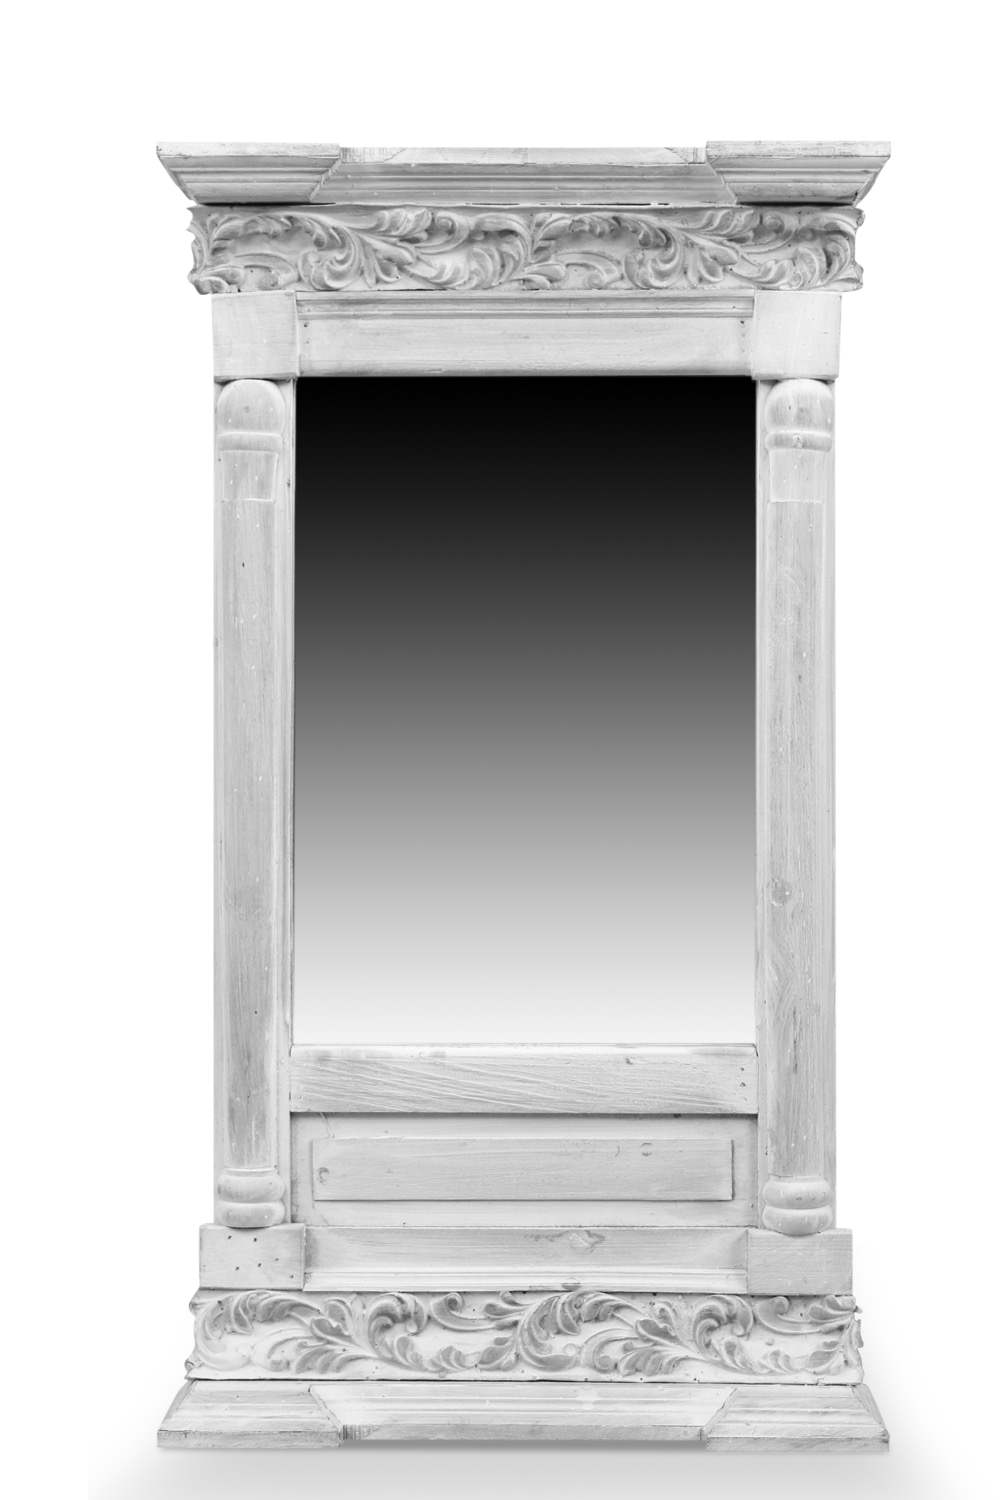 miroir ancien rectangulaire vertical bois ceruse blanc. Black Bedroom Furniture Sets. Home Design Ideas